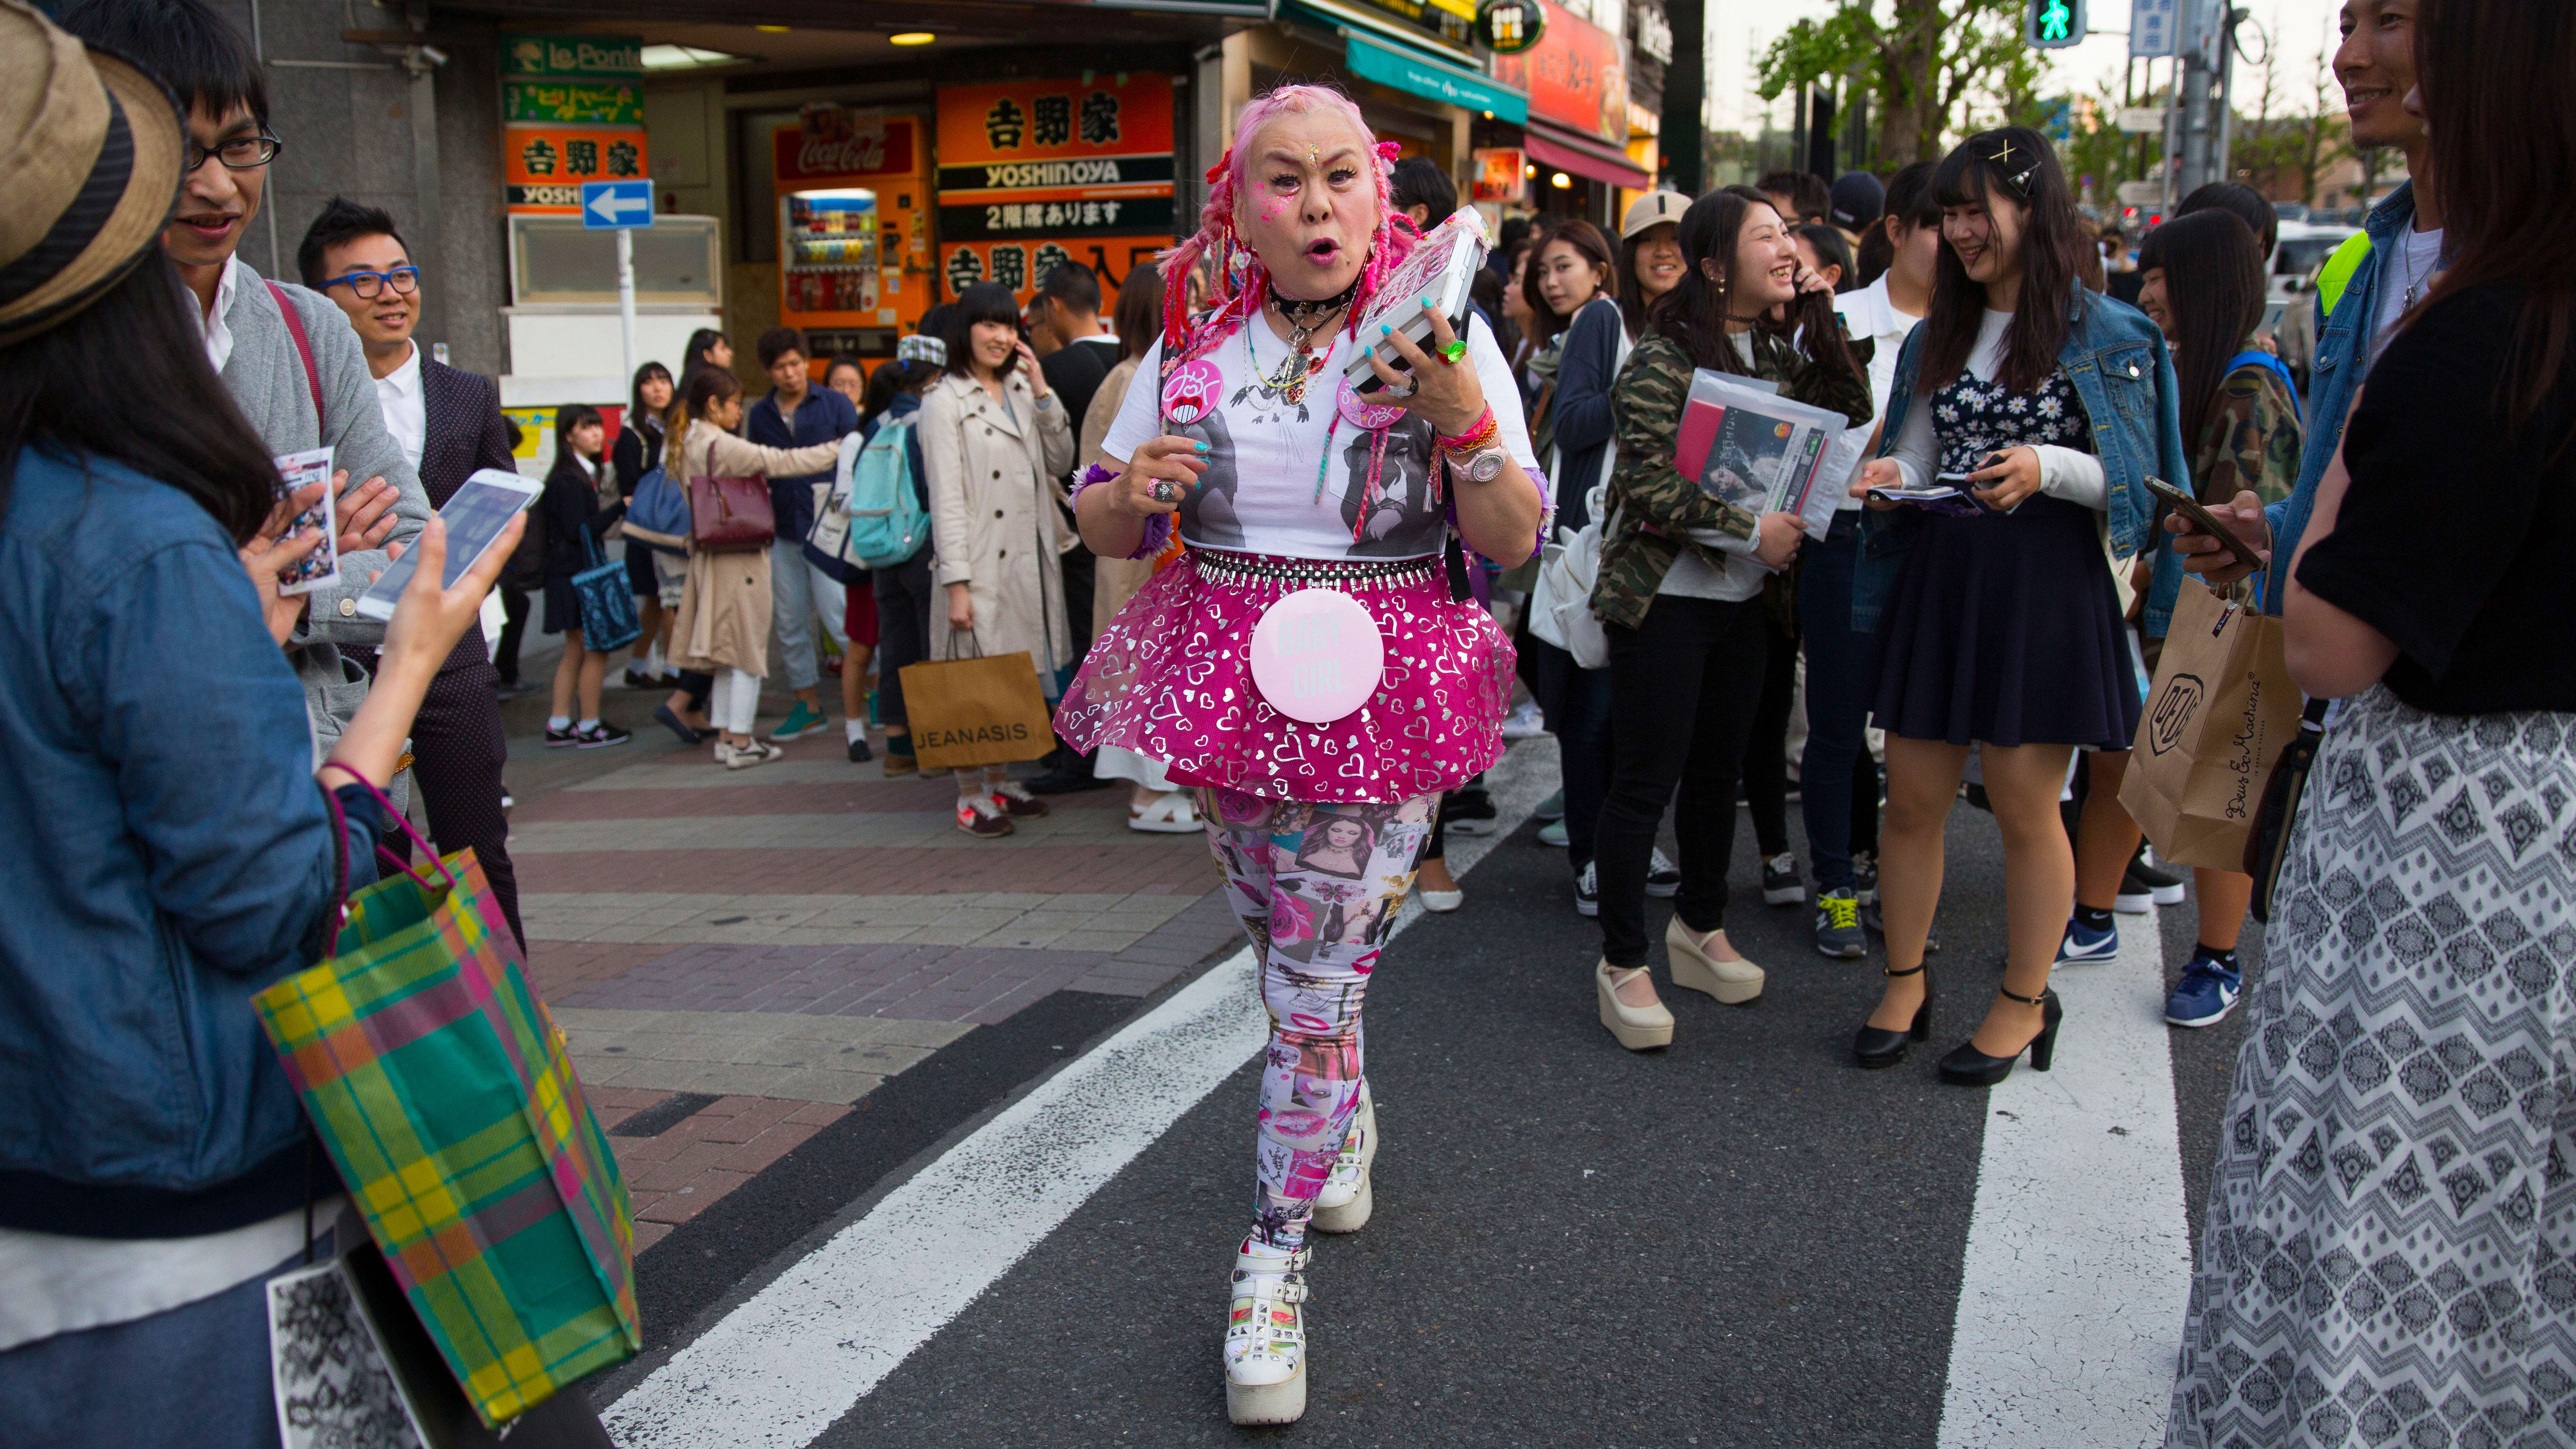 fcf9546df0d3 Harajuku  The epicenter of Tokyo s eccentric youth culture - 9Travel